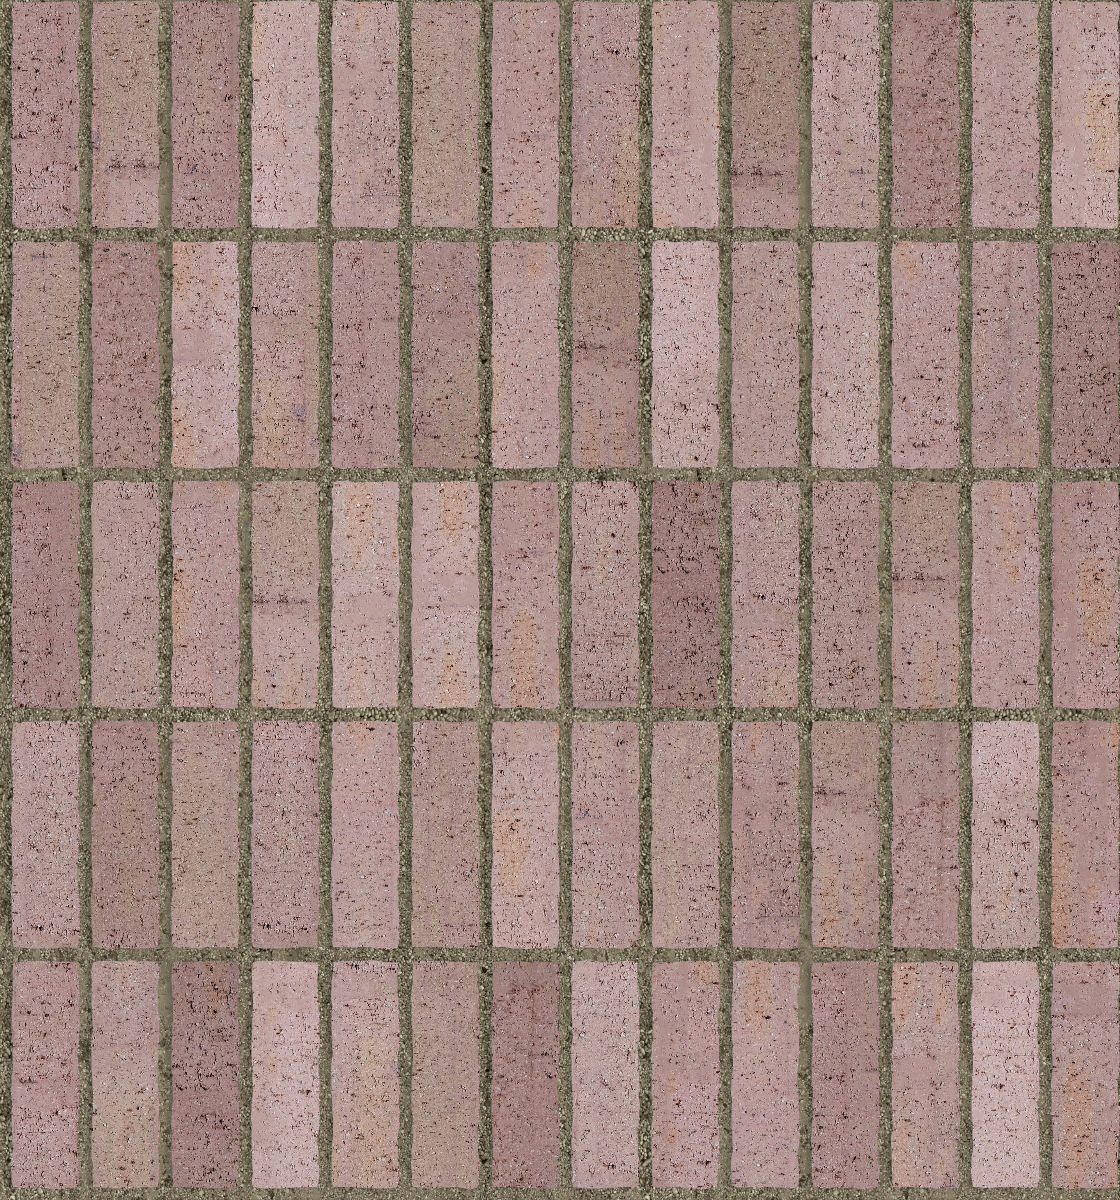 A seamless brick texture with even drag brick  arranged in a stack pattern